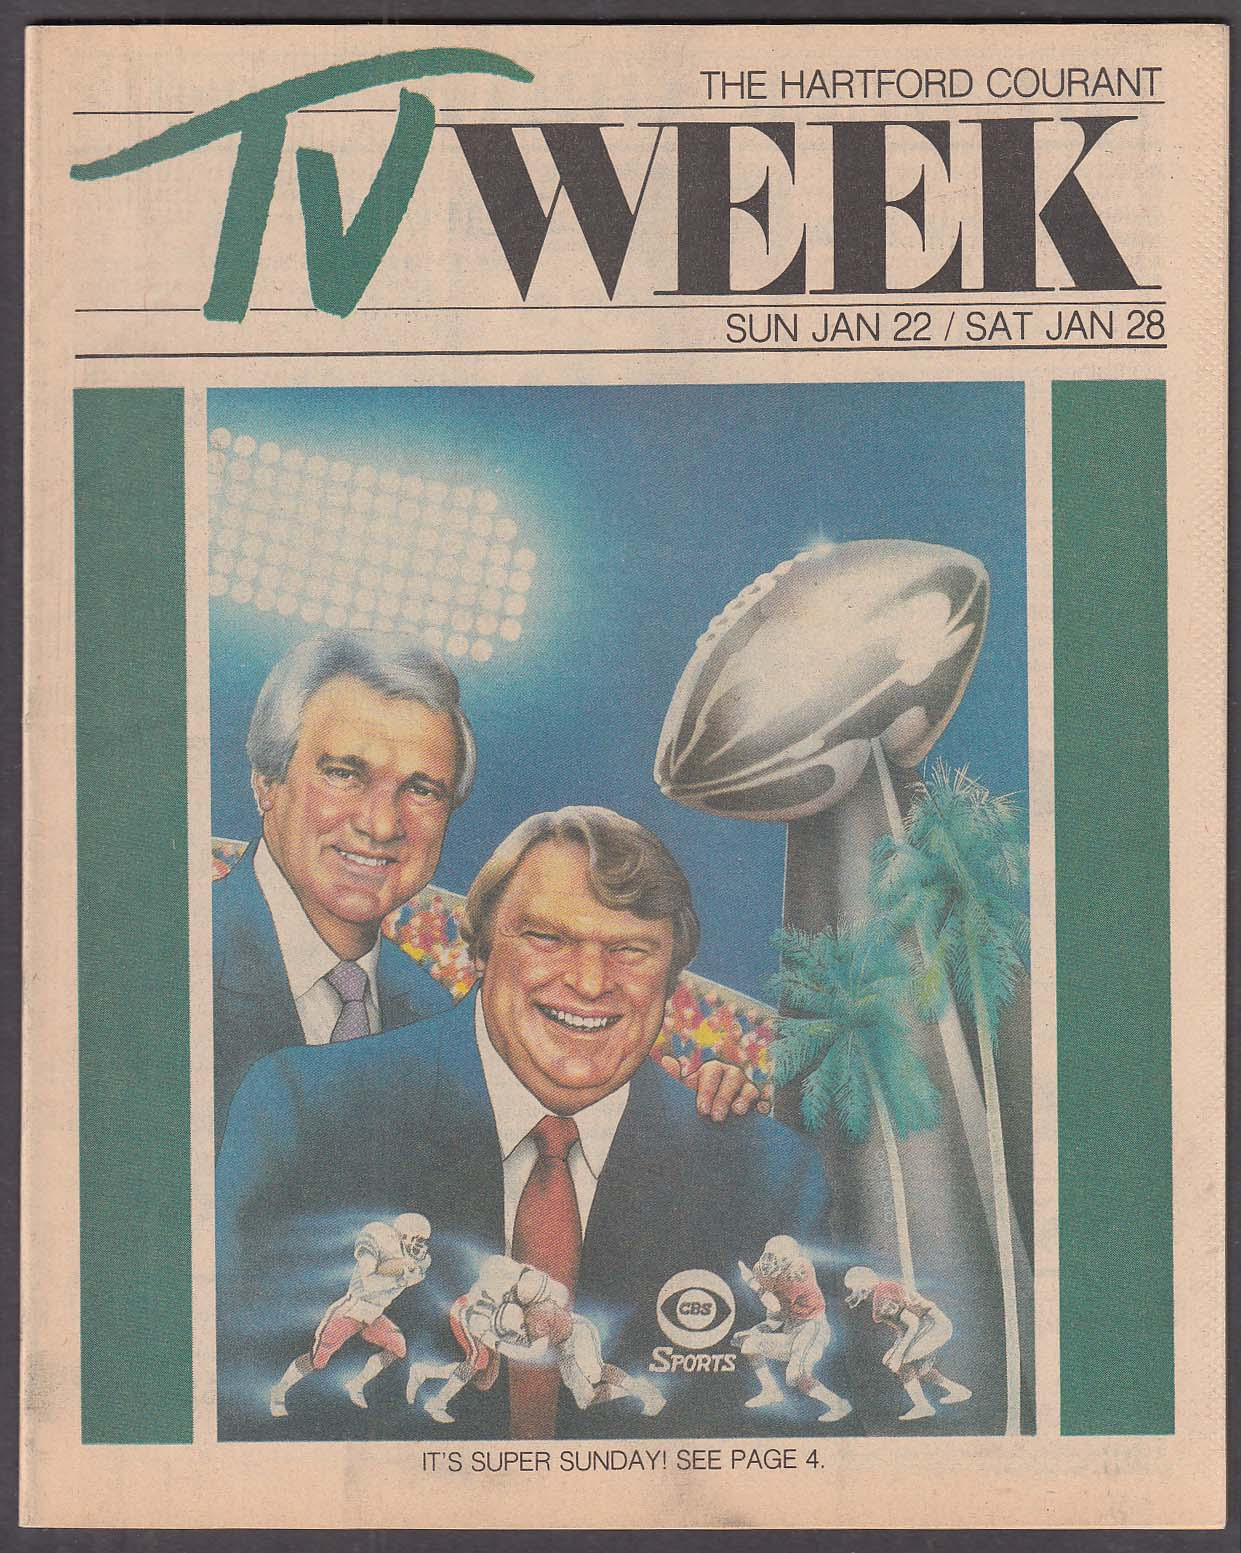 Image for TV WEEK Summerall Madden Super Bowl Hartford Courant 1/22 1984